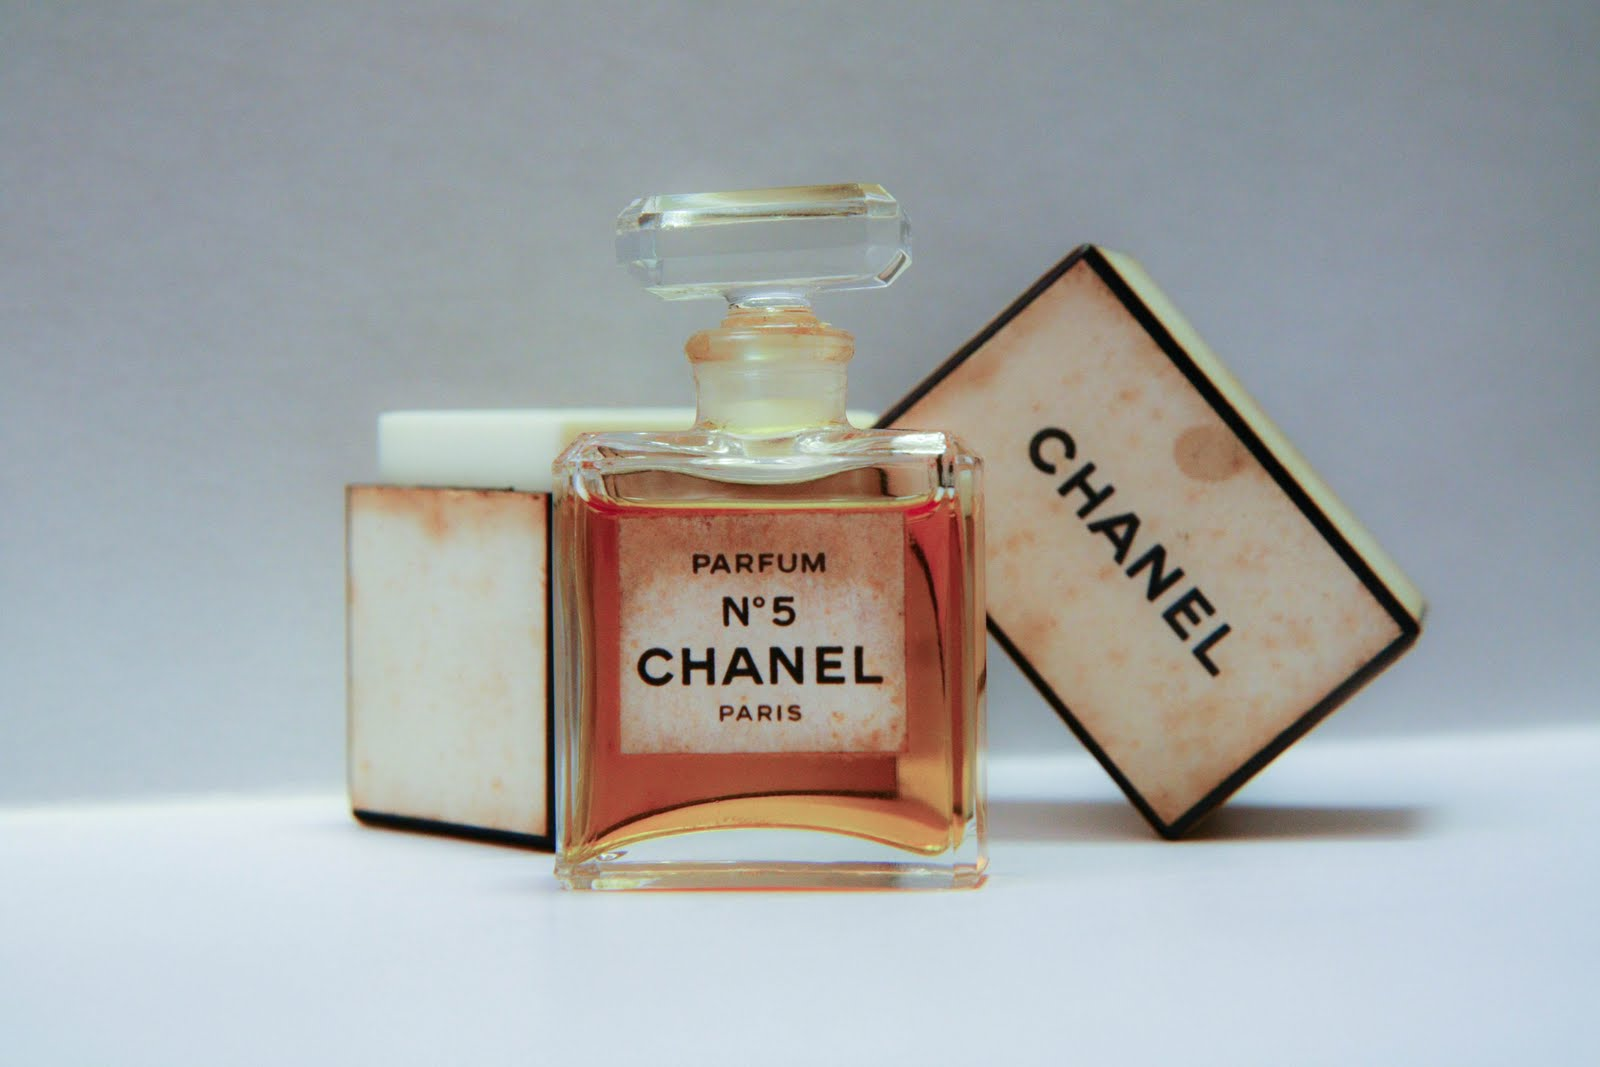 Garden Fairy & Cookie Monster: An Old Chanel No.5 perfume bottle